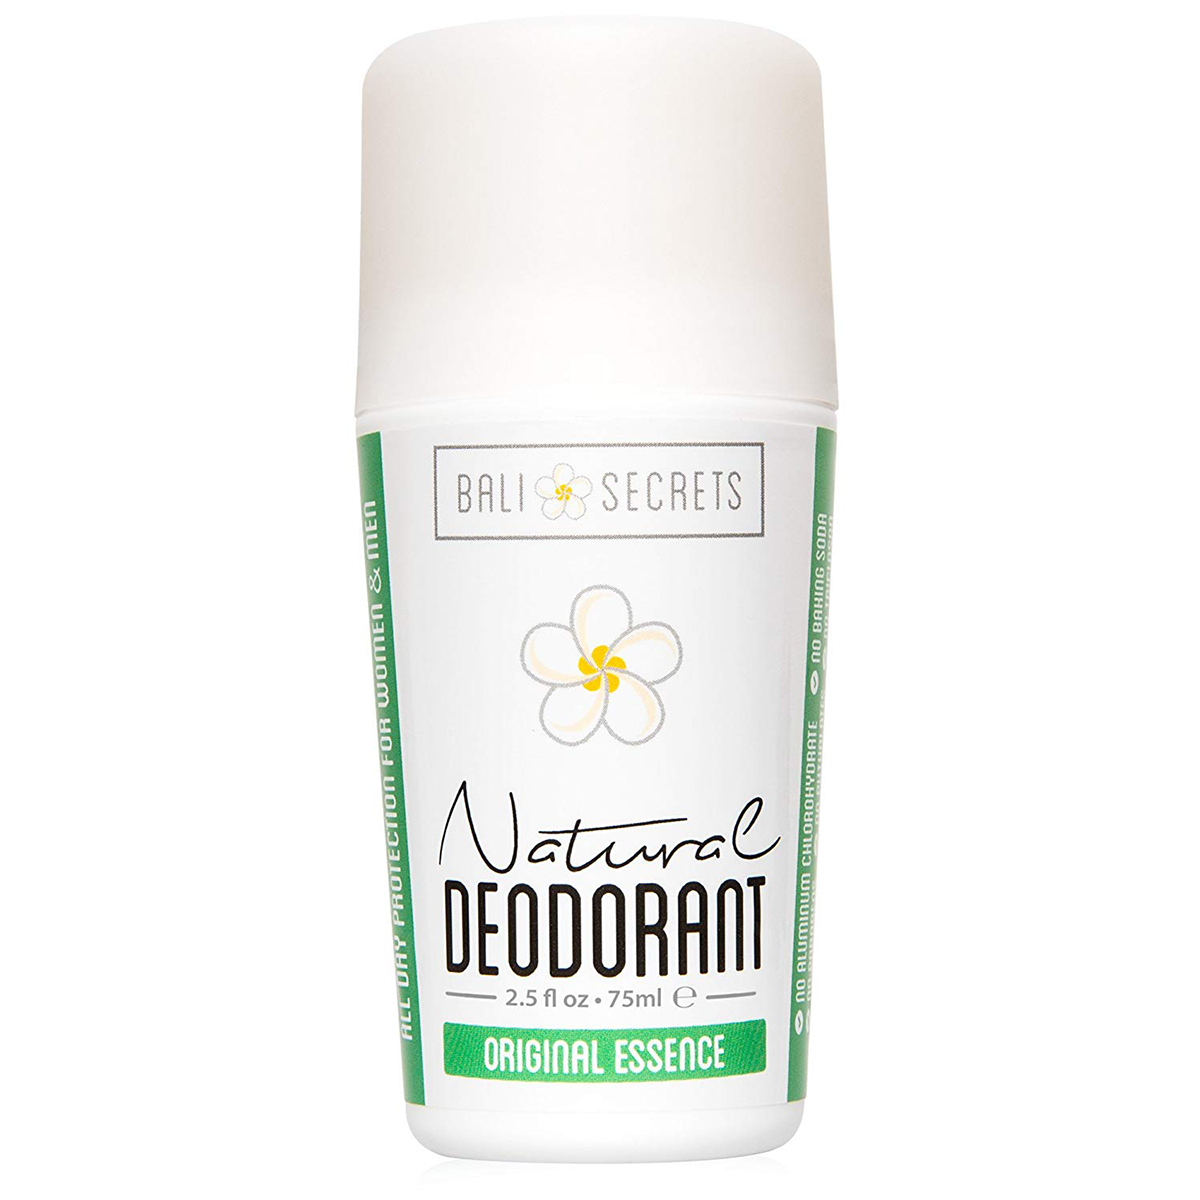 These 11 Top-Rated Deodorants Will Keep You Feeling Fresh